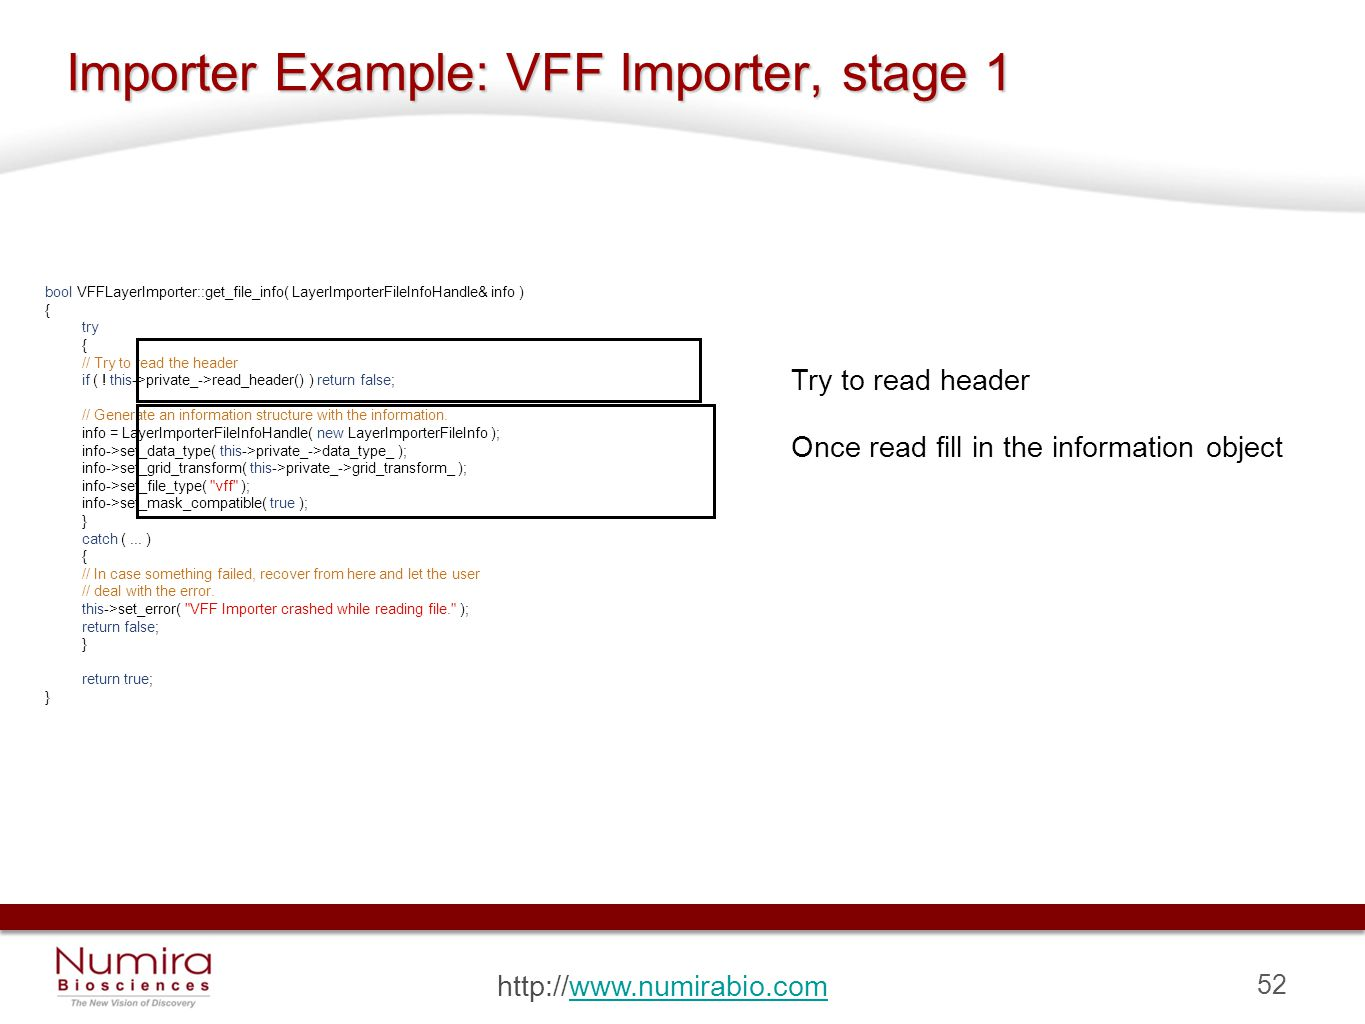 52 http://www.numirabio.comwww.numirabio.com Importer Example: VFF Importer, stage 1 bool VFFLayerImporter::get_file_info( LayerImporterFileInfoHandle& info ) { try { // Try to read the header if ( .